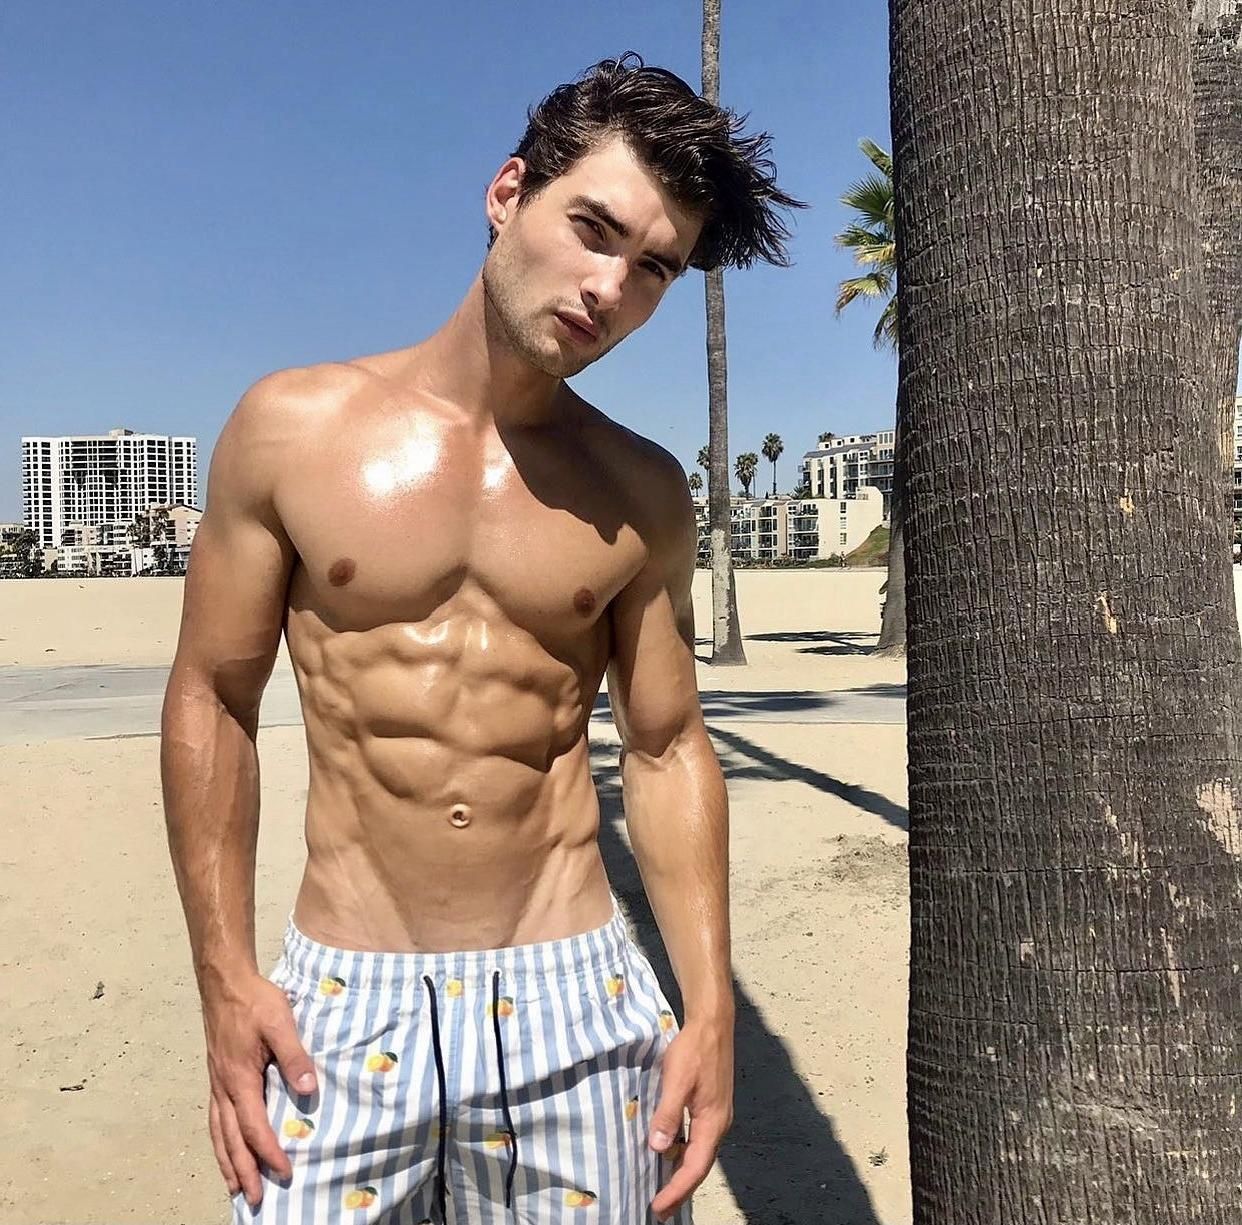 cute-beach-gay-twinks-fit-shirtless-slim-ripped-body-male-model-abs